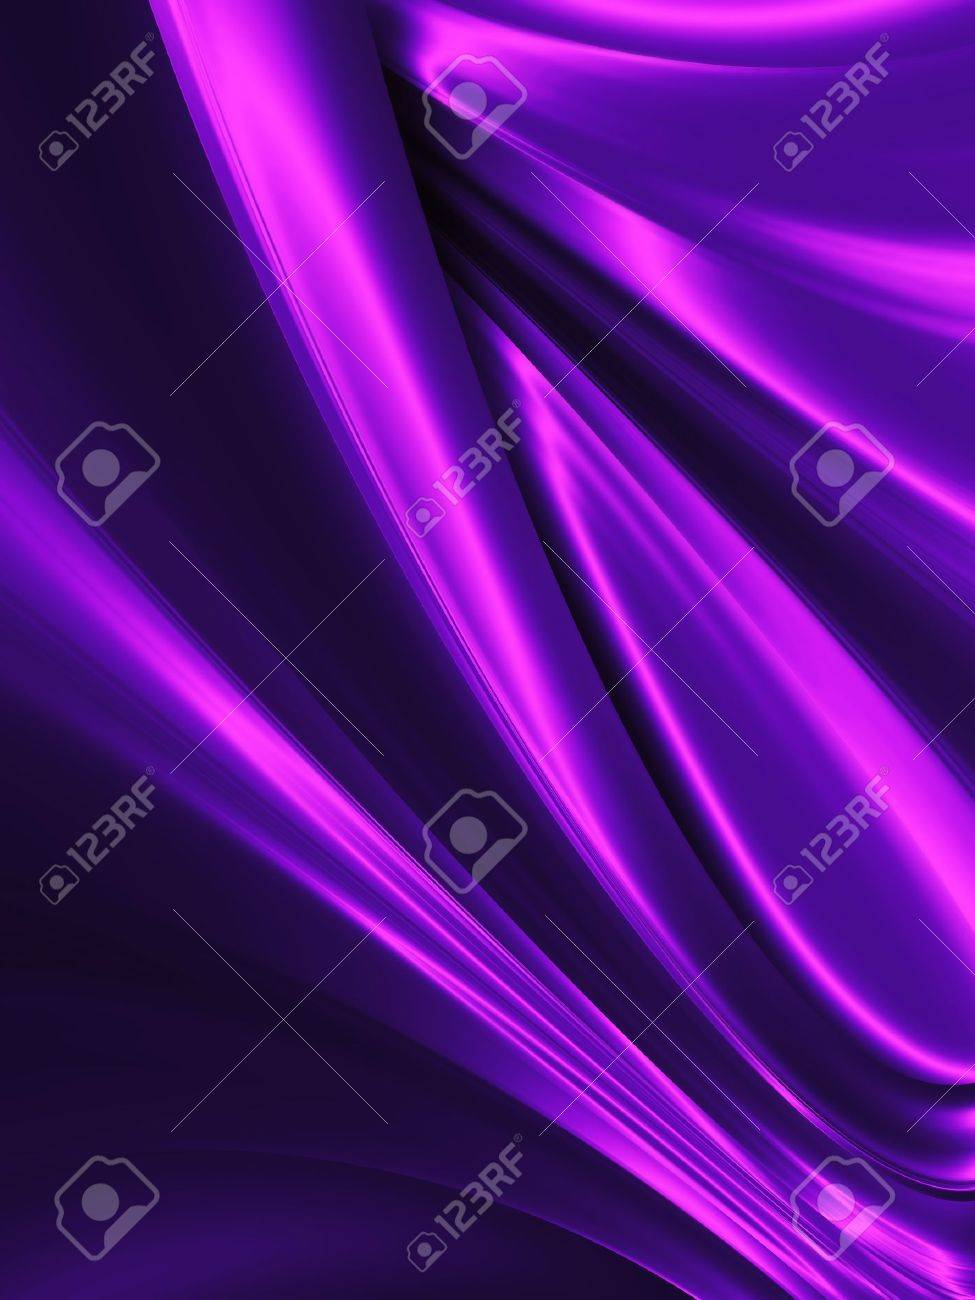 wave of purple silk close up - abstract background Stock Photo - 11976435